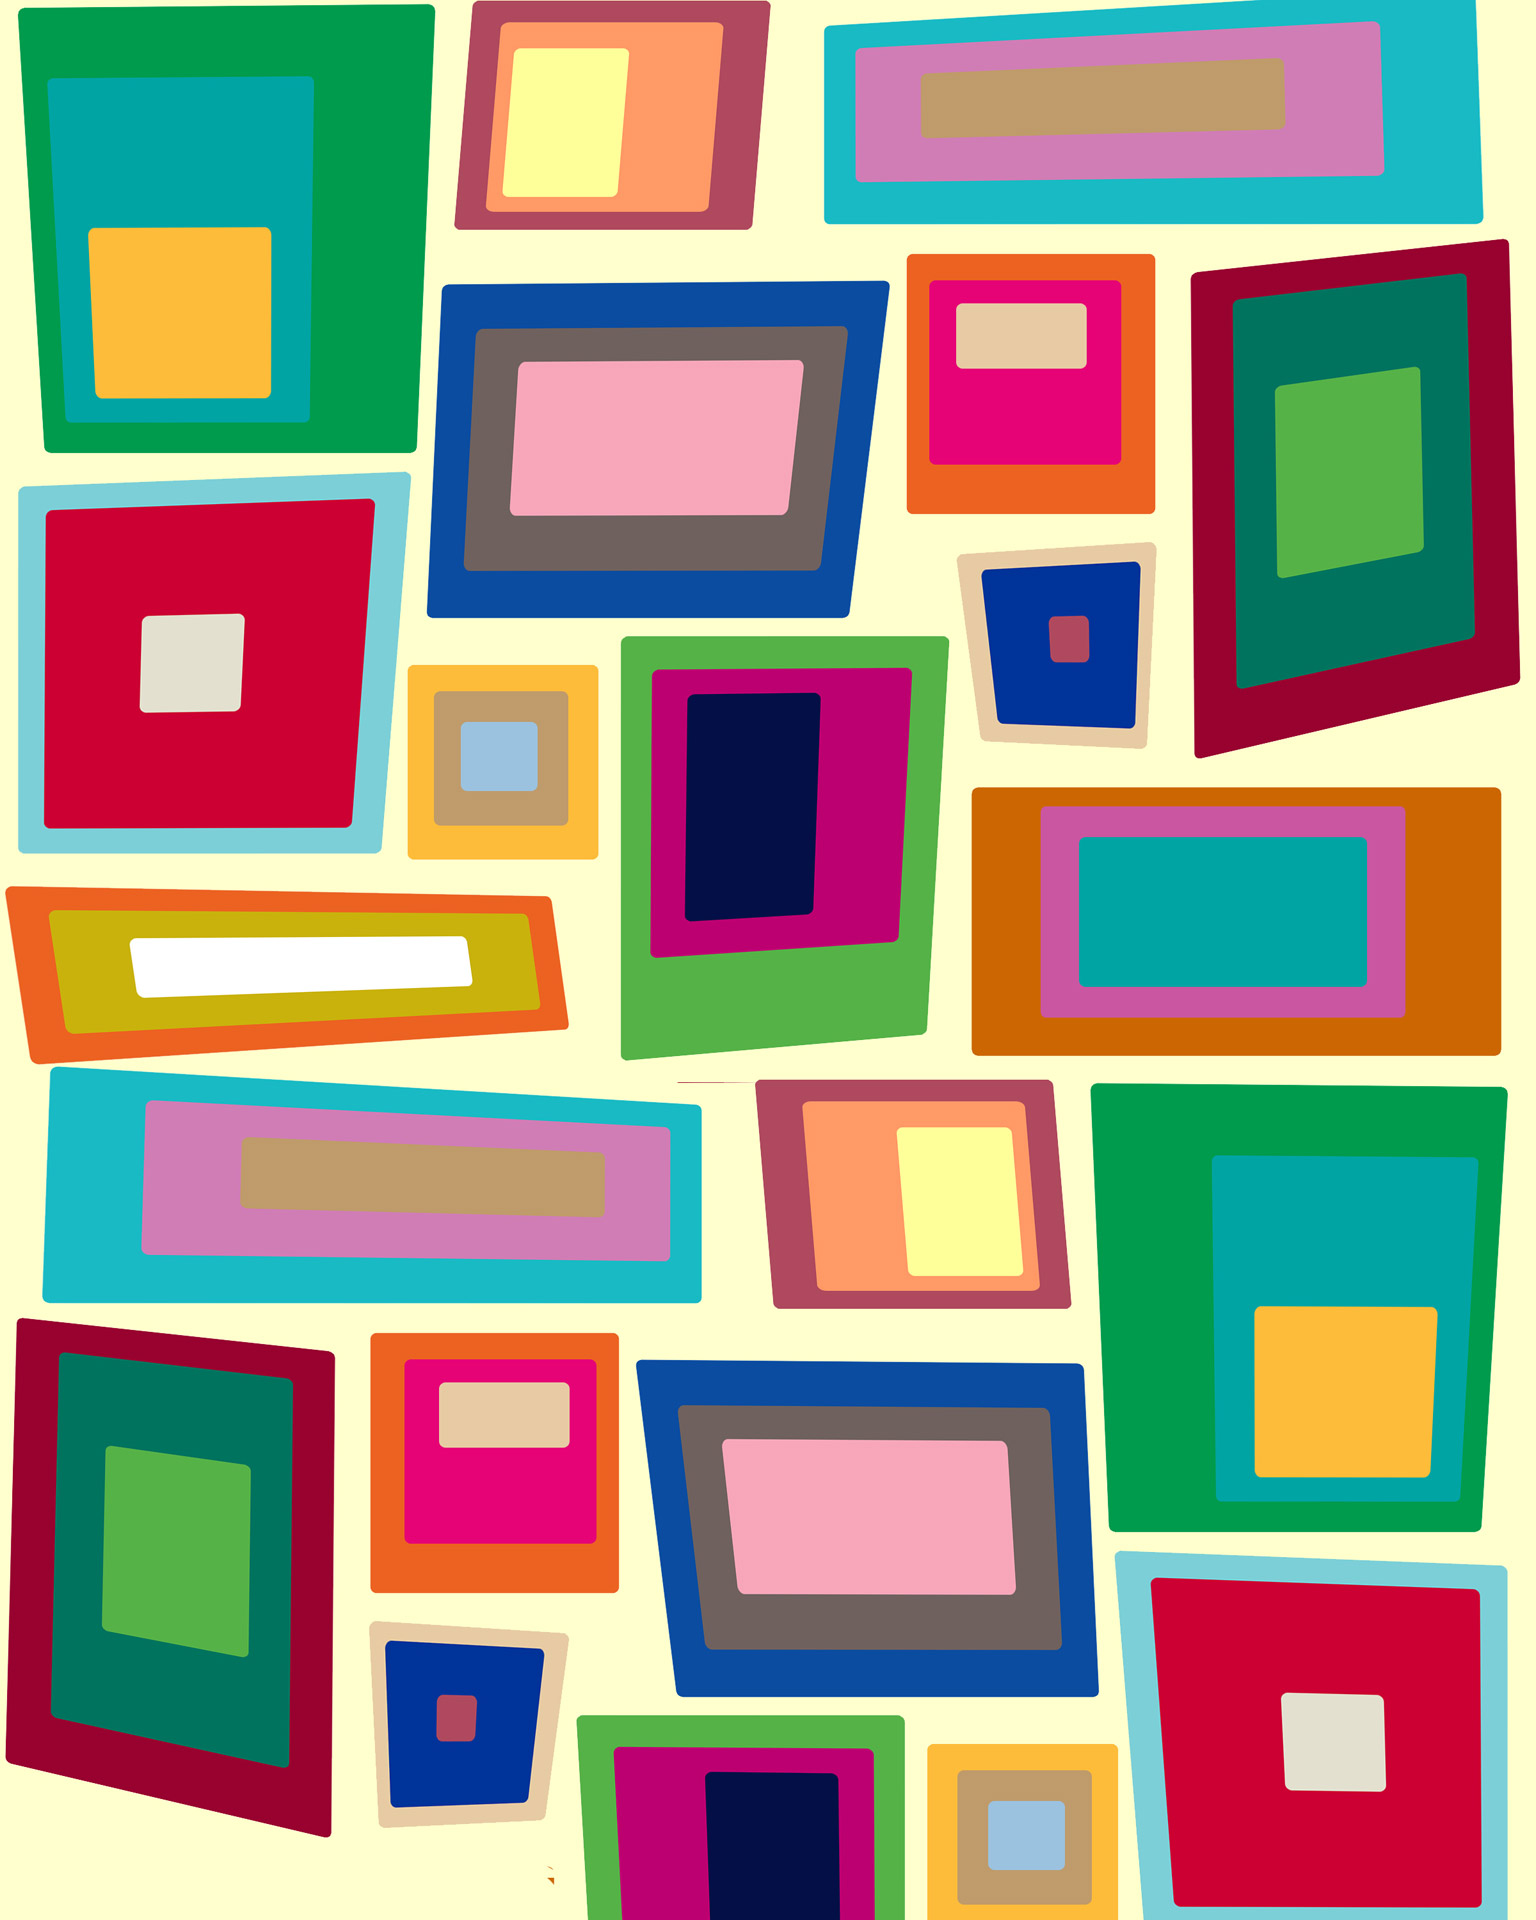 Colorful Iphone Wallpaper: Colorful Squares Wallpapers High Quality